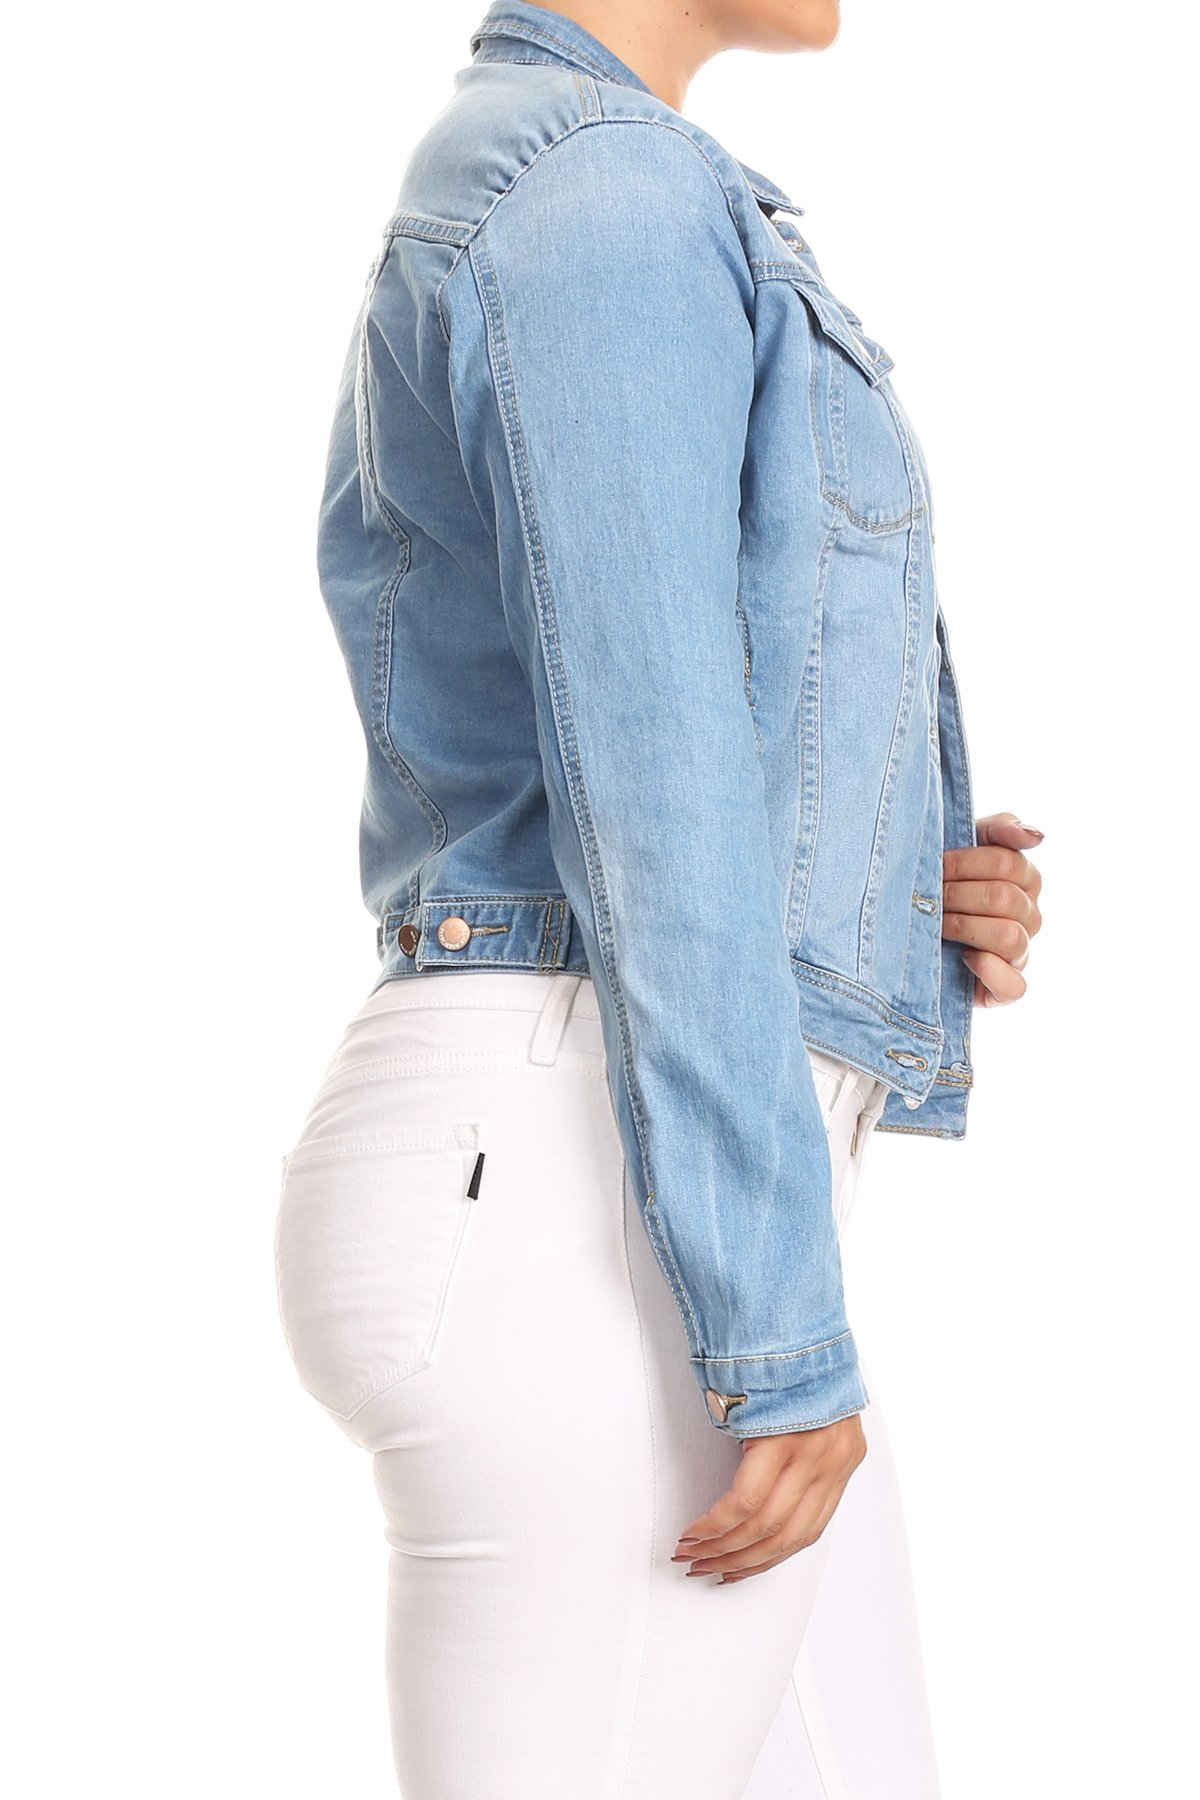 Women-039-s-Premium-Denim-Jackets-Long-Sleeve-Jean-Coats thumbnail 7